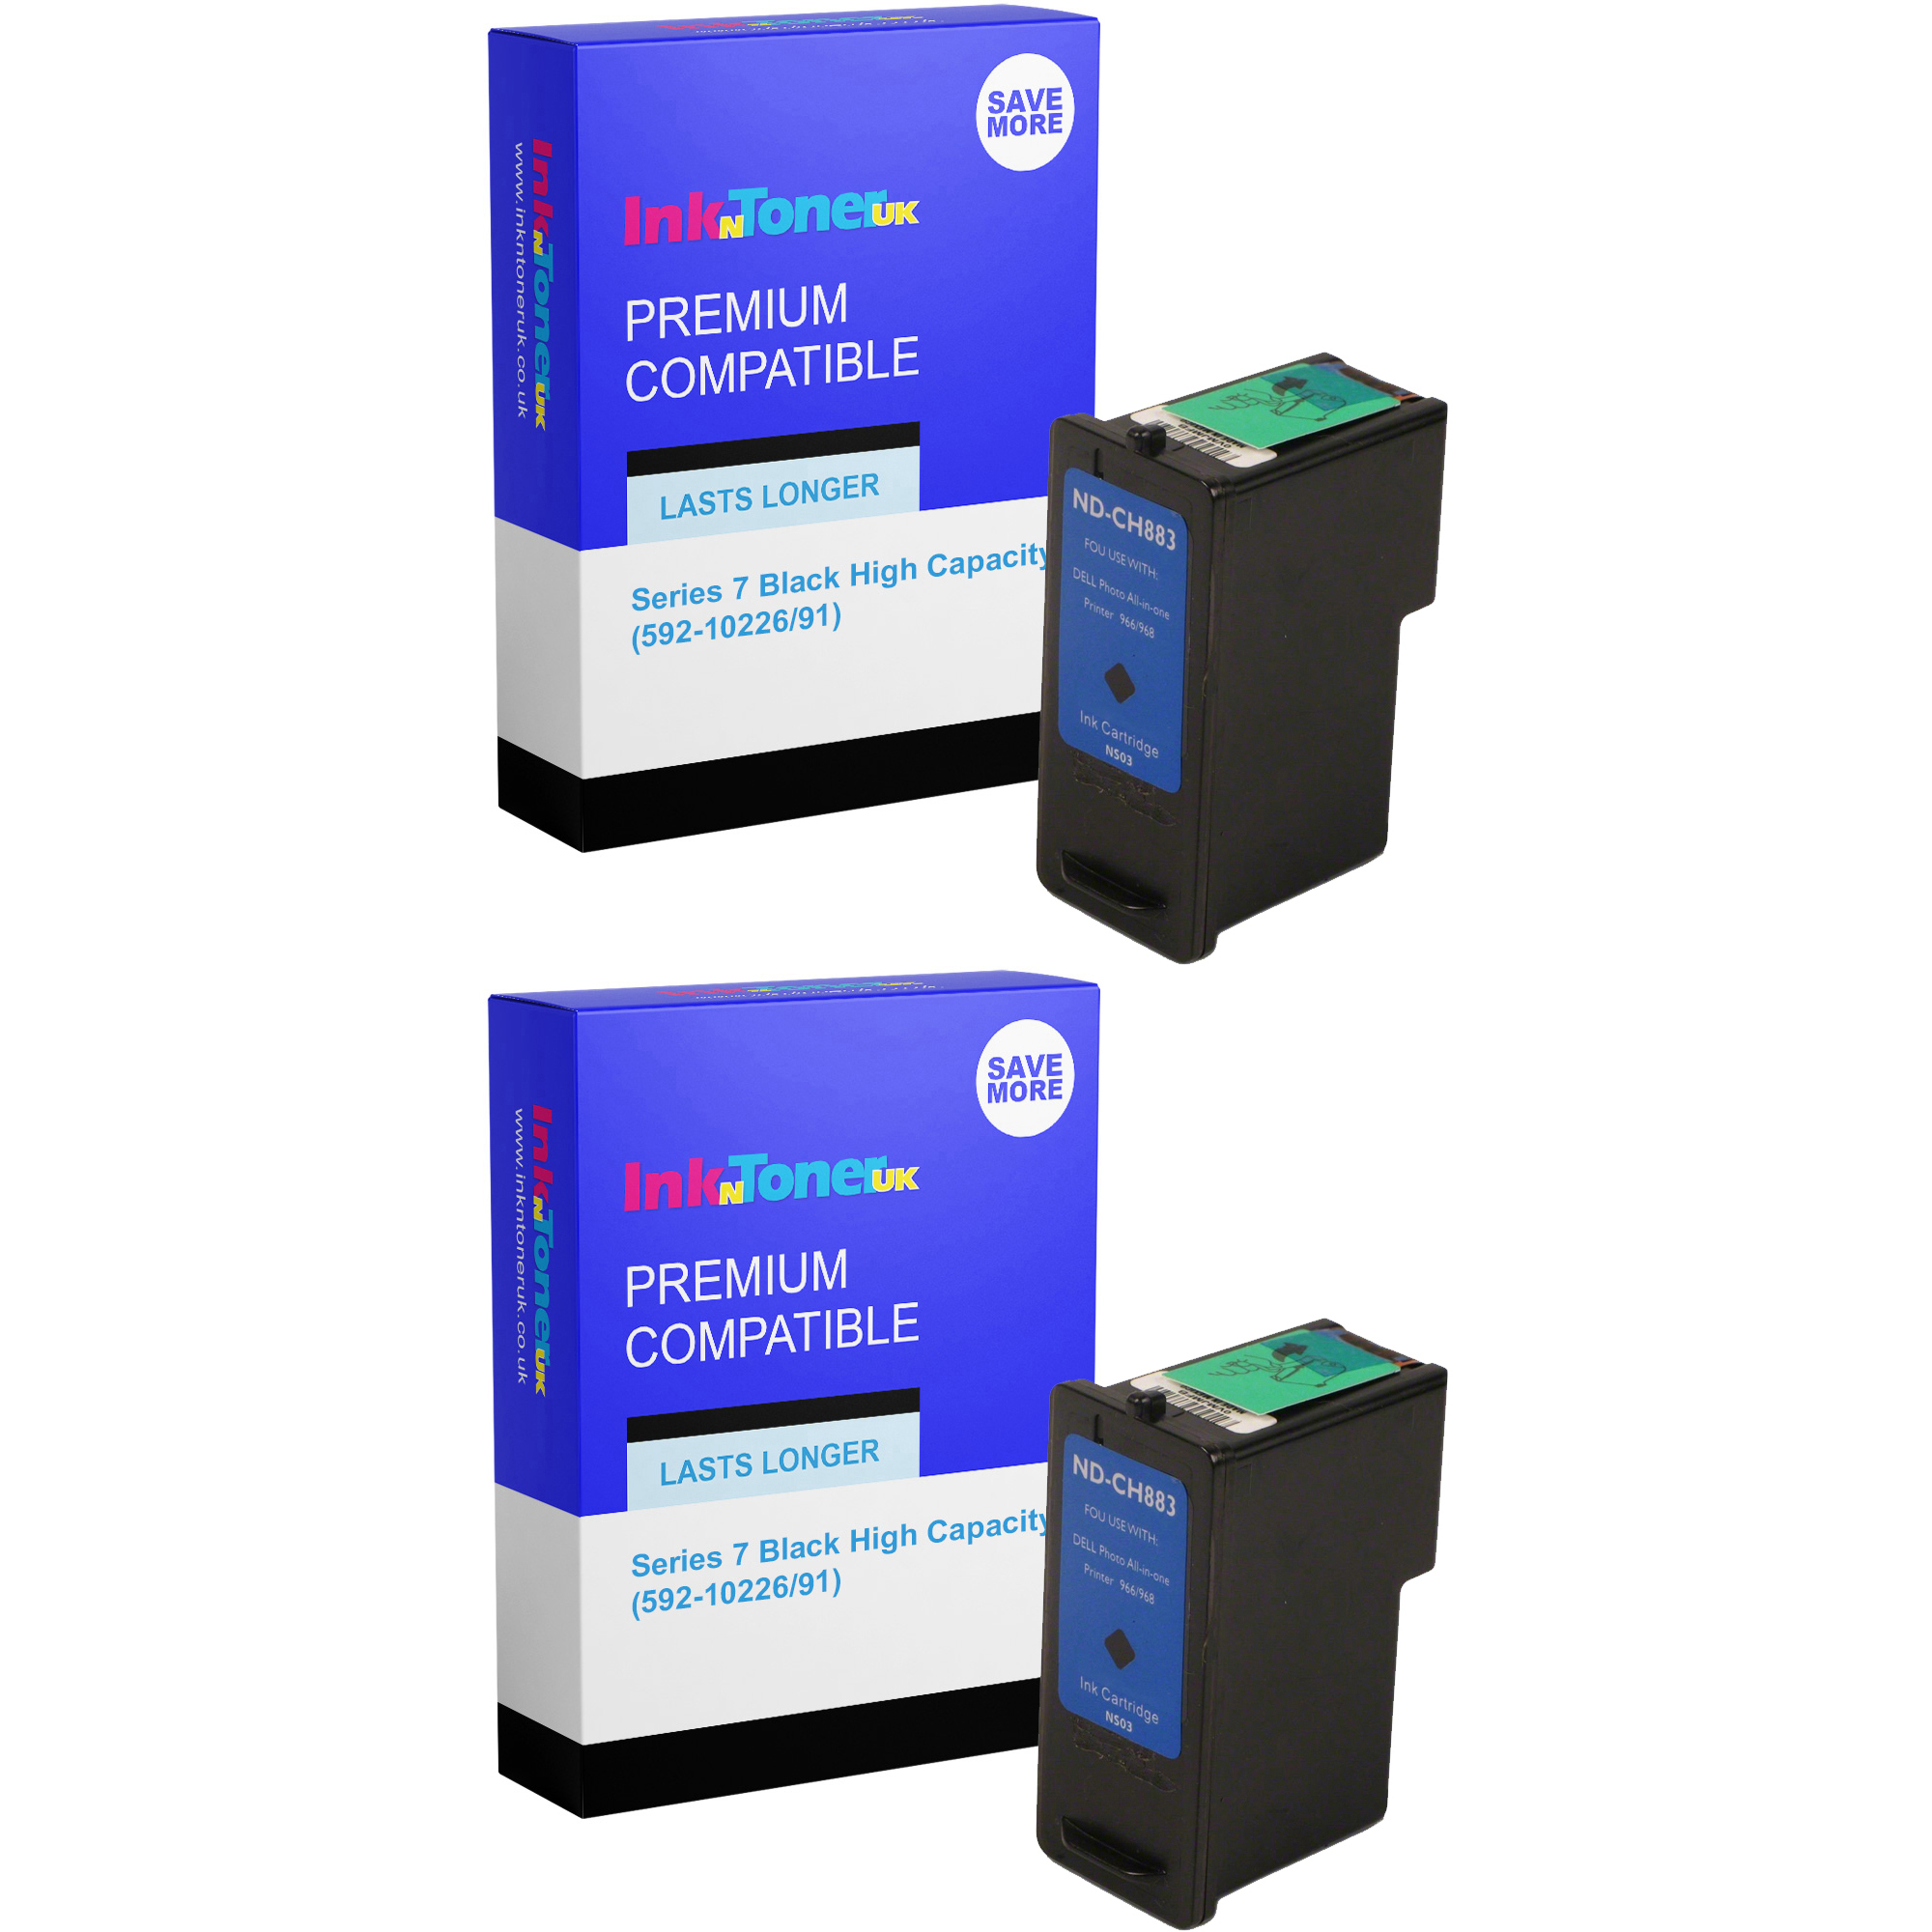 Dell ink coupons uk